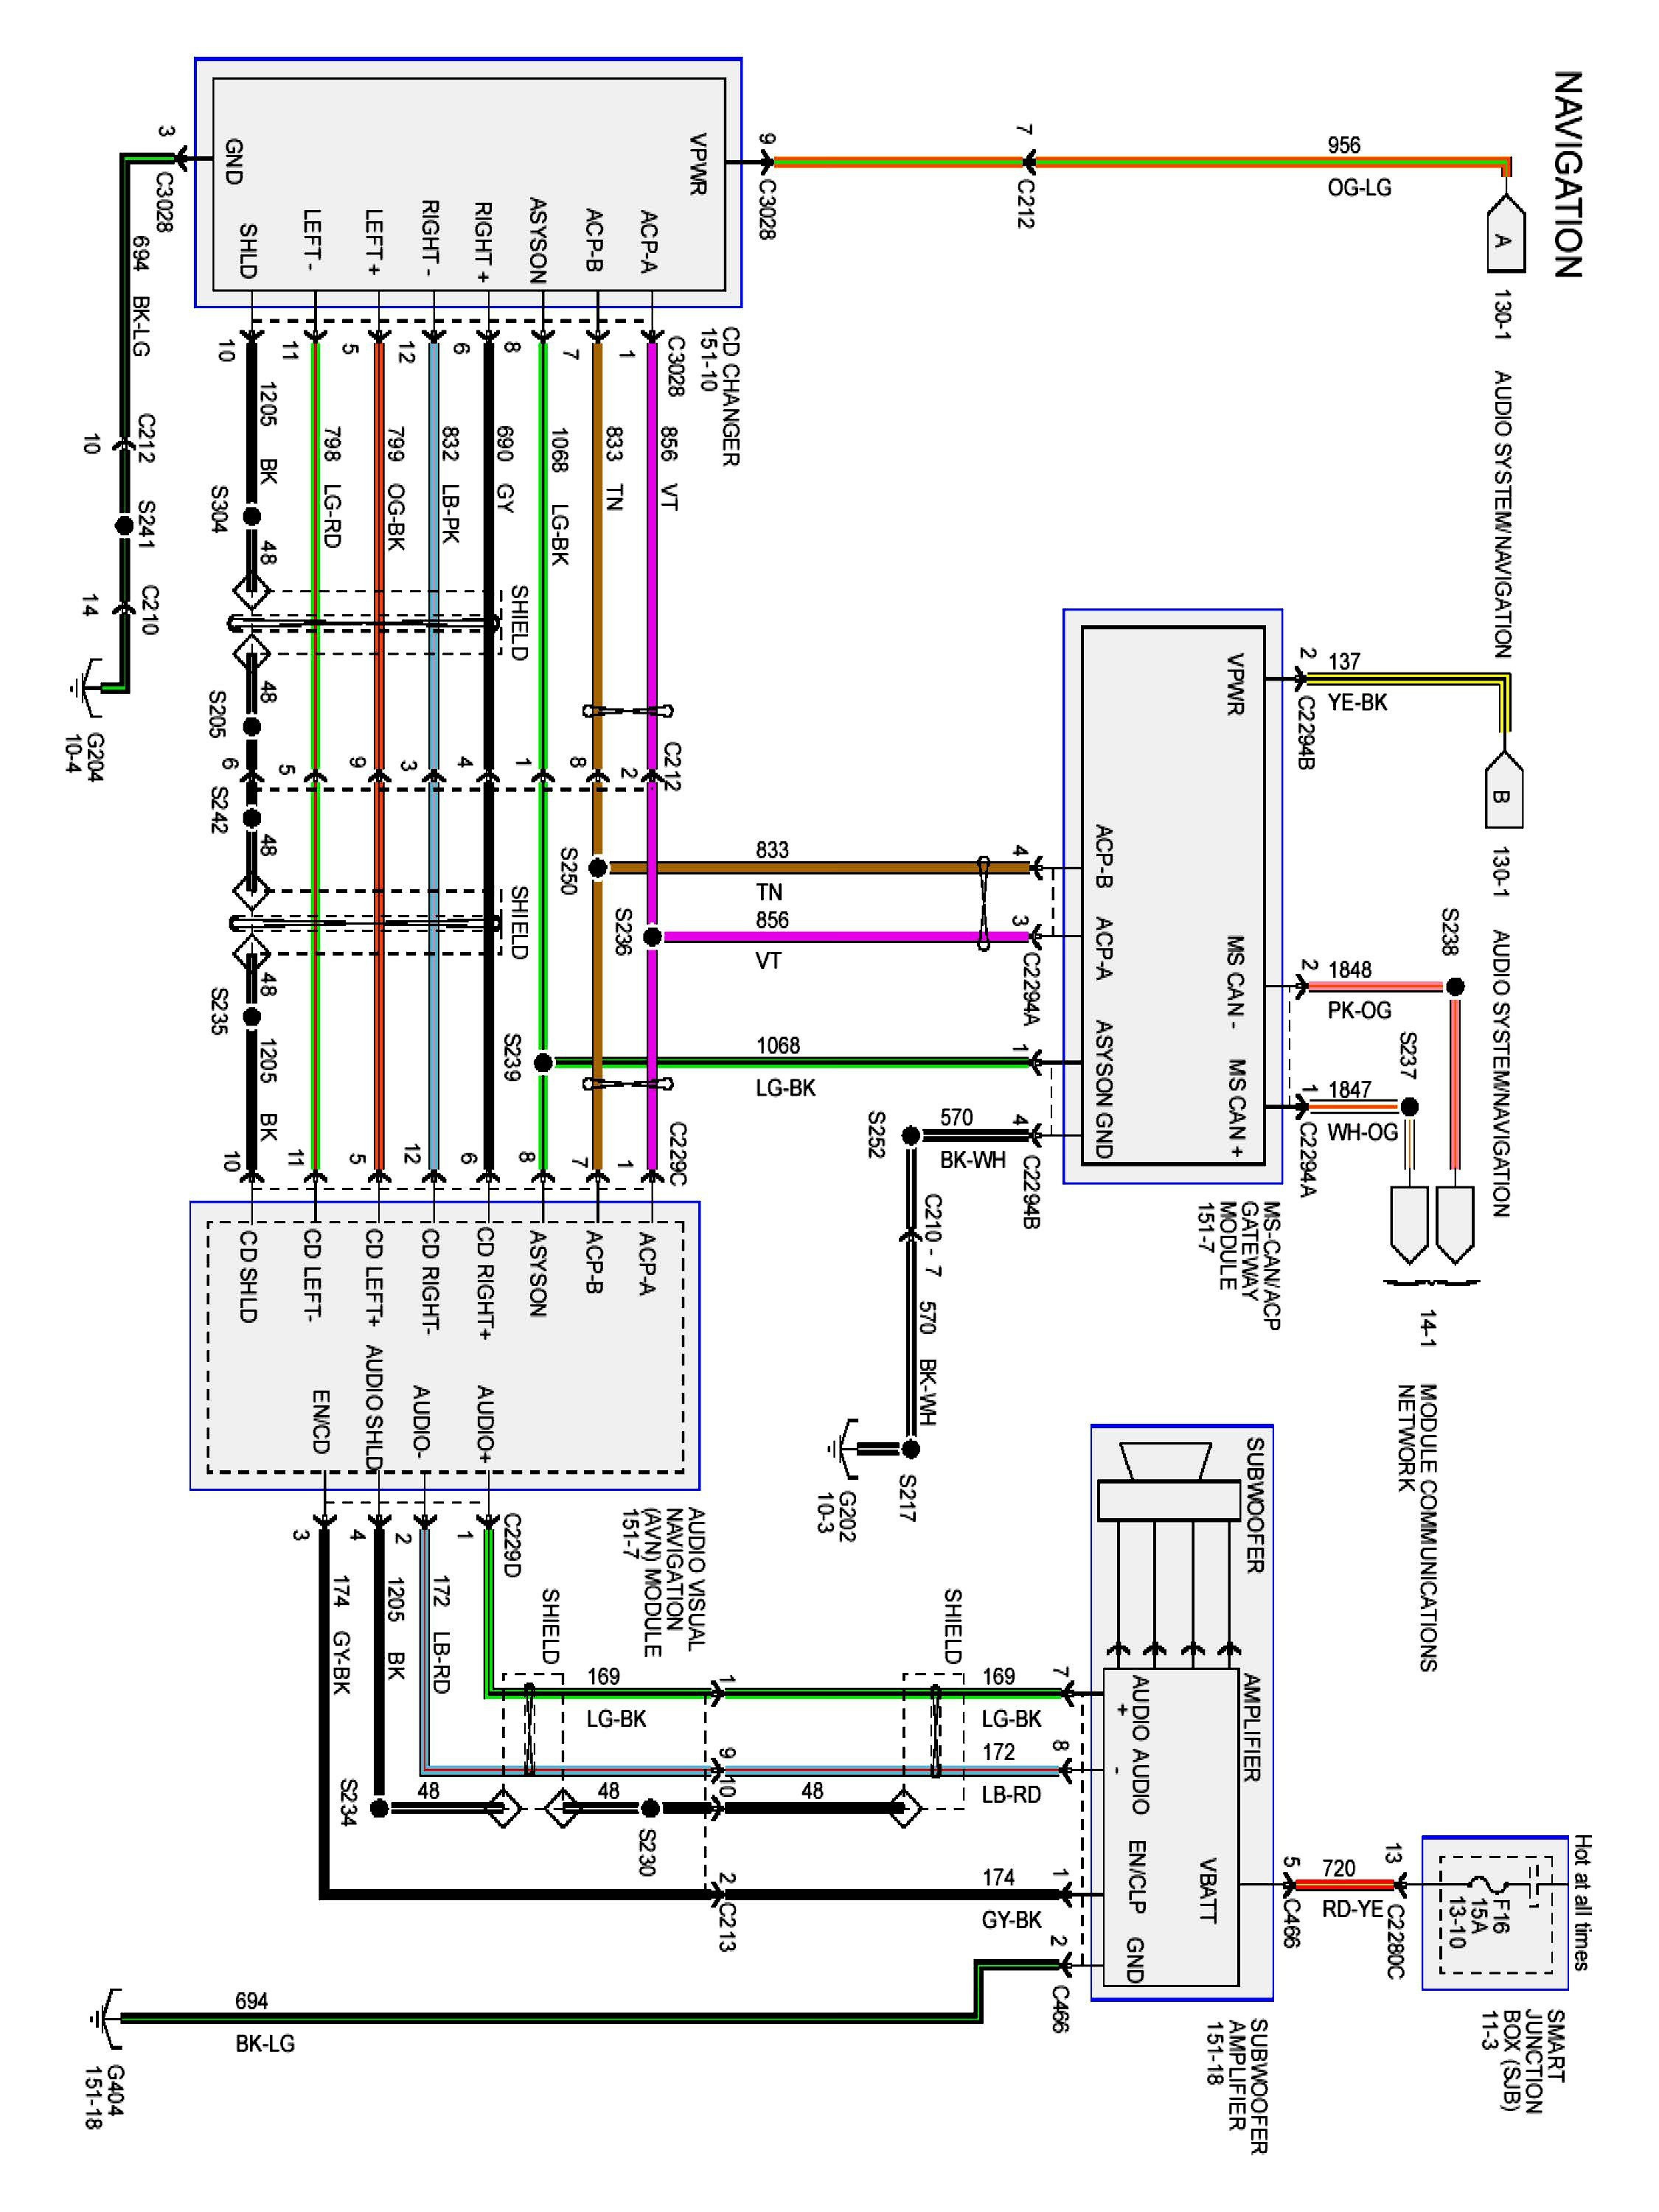 DIAGRAM] 2000 Impala Stereo Wiring Diagram FULL Version HD Quality Wiring  Diagram - MEDIAGRAMINDIA.VIRTUAL-EDGE.ITDiagram Database - virtual-edge.it